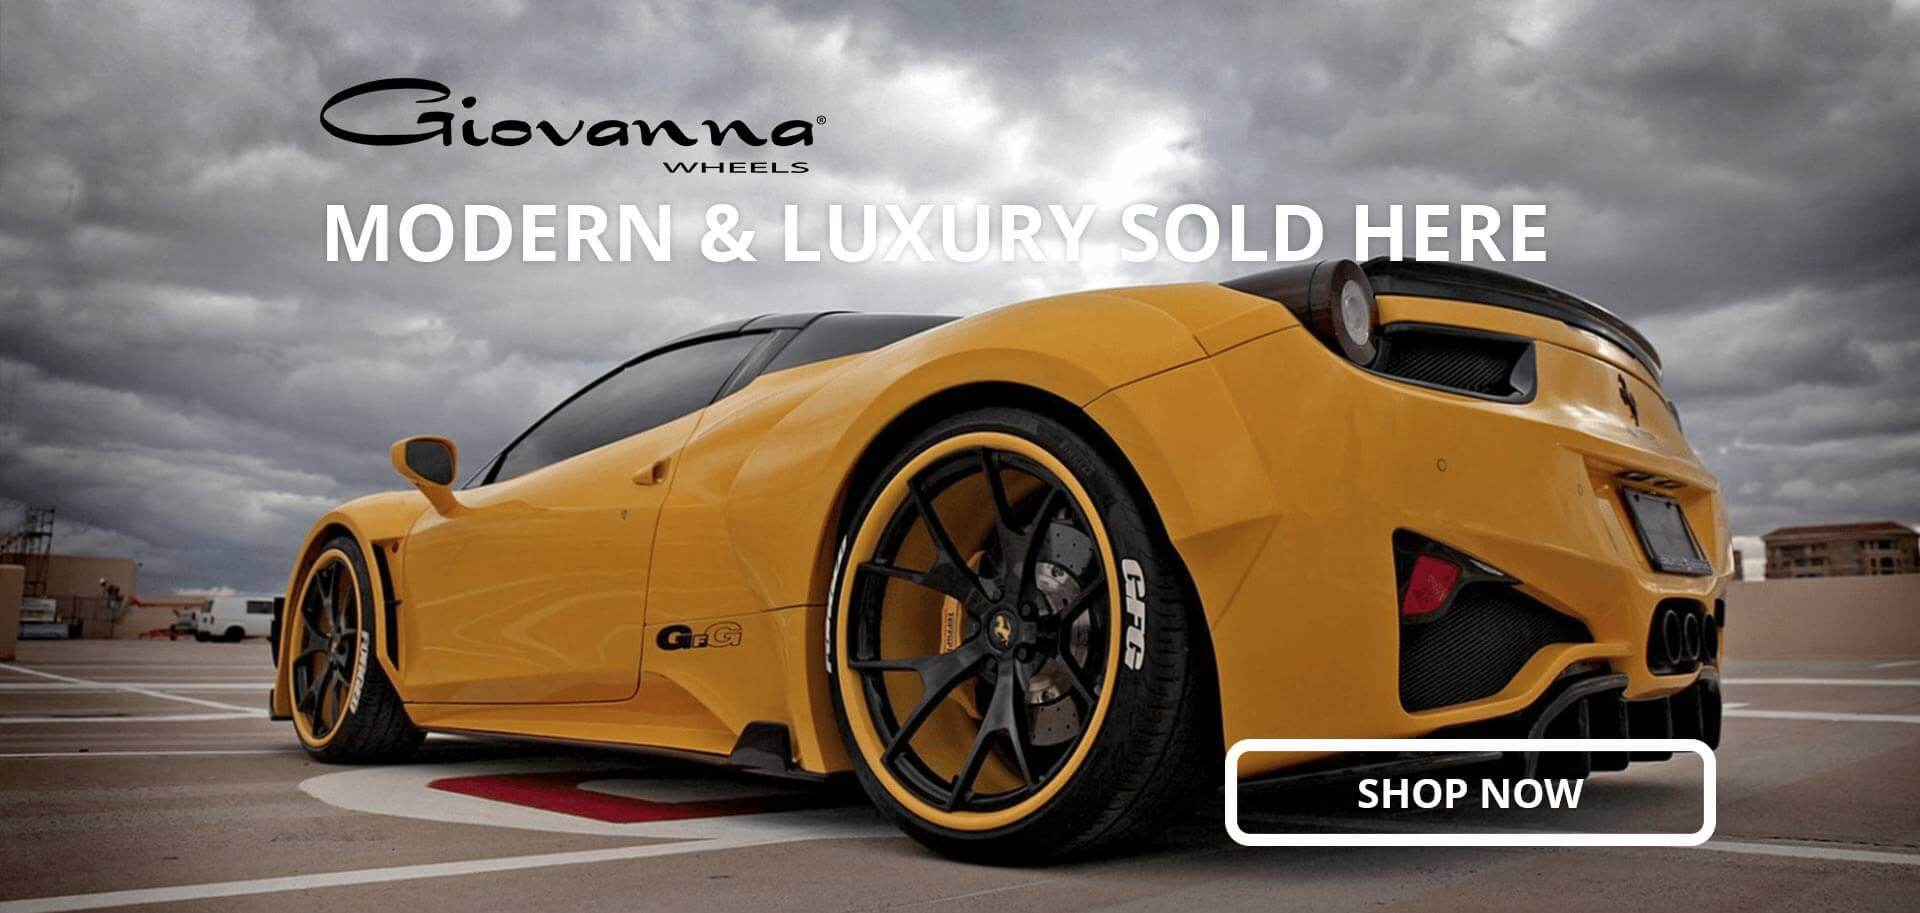 Modern & Luxury Vehicles San Diego